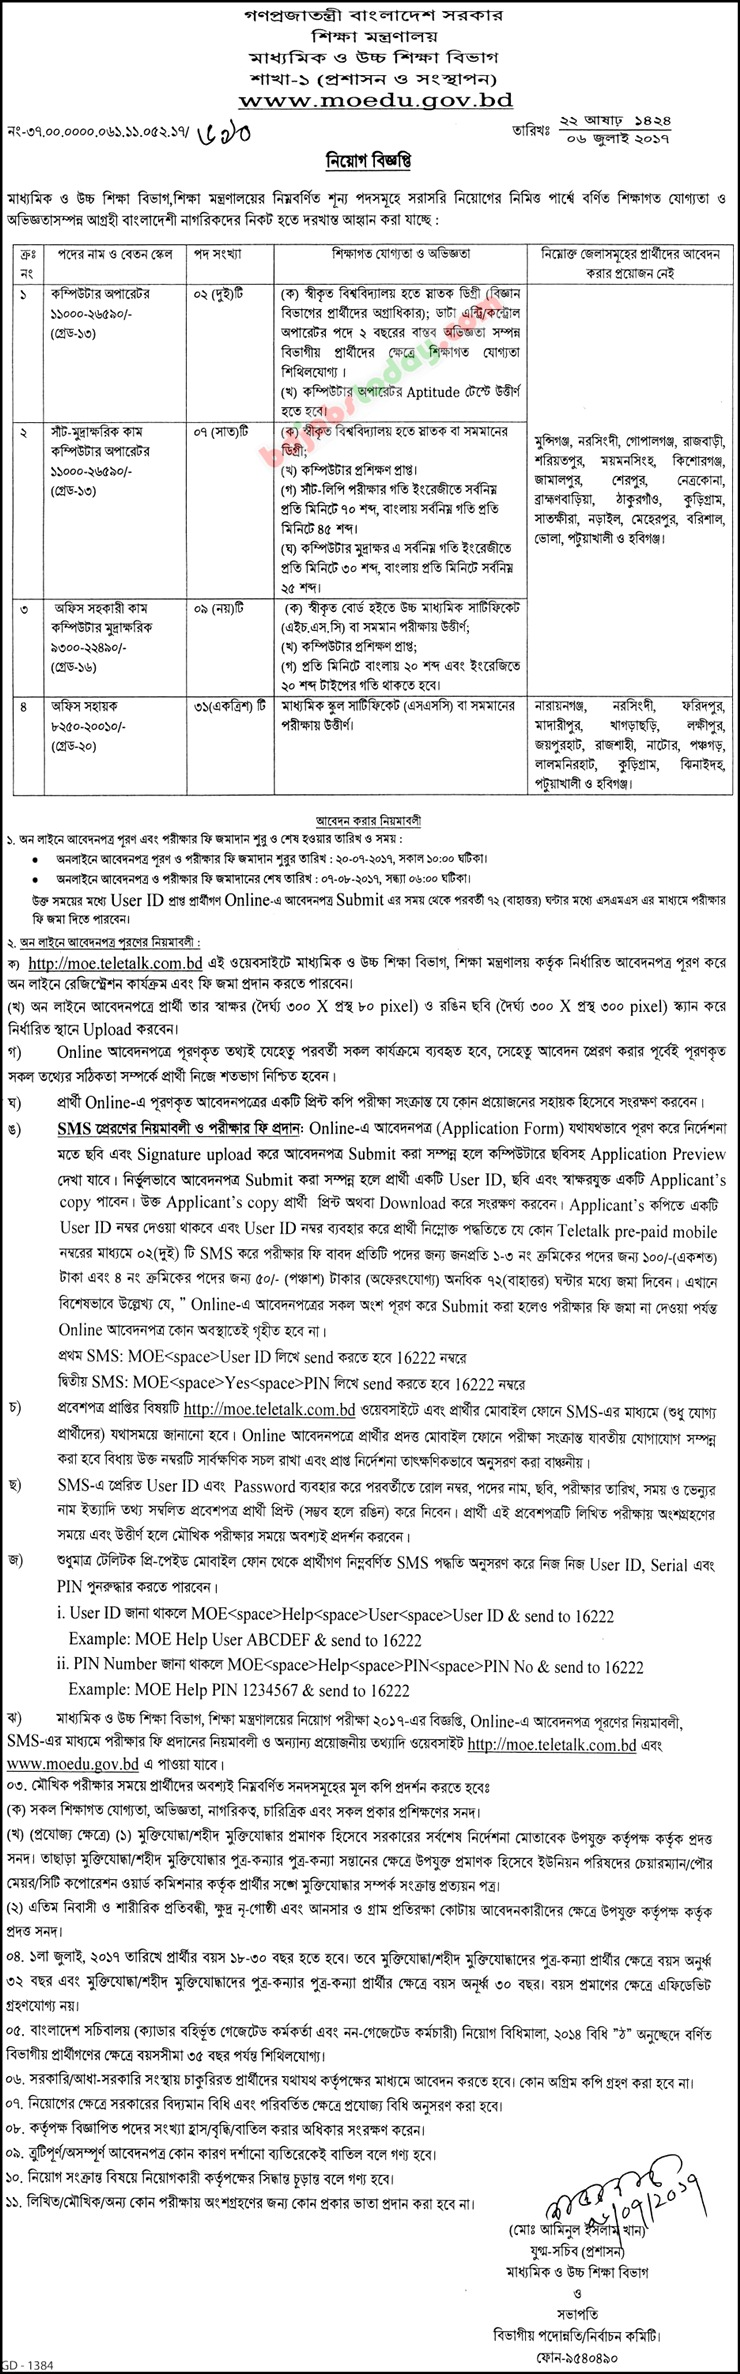 Directorate of Secondary and Higher Education (DSHE) jobs